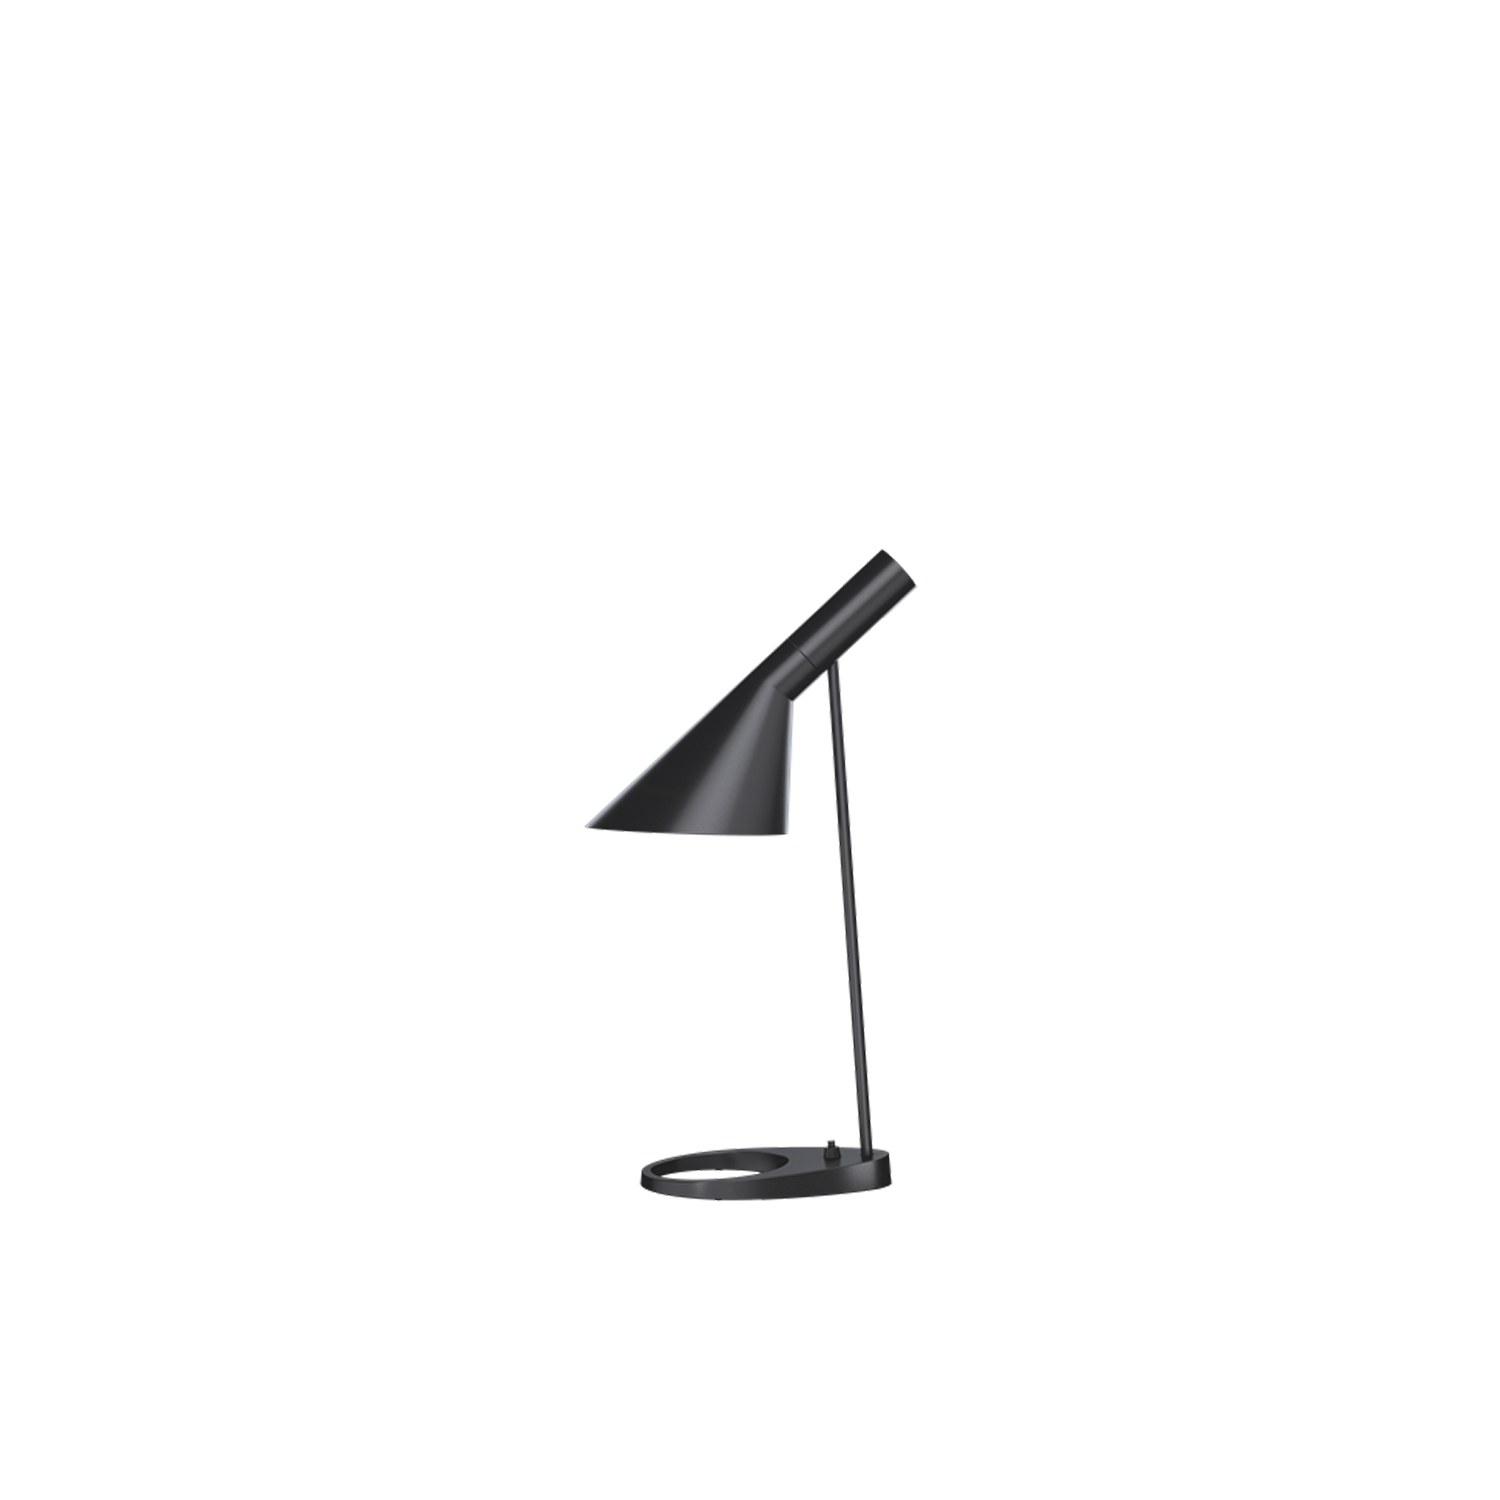 AJ Table Lamp - The fixture emits downward directed light. The angle of the shade can be adjusted to optimize light distribution. The shade is painted white on the inside to ensure a soft comfortable light.   | Matter of Stuff